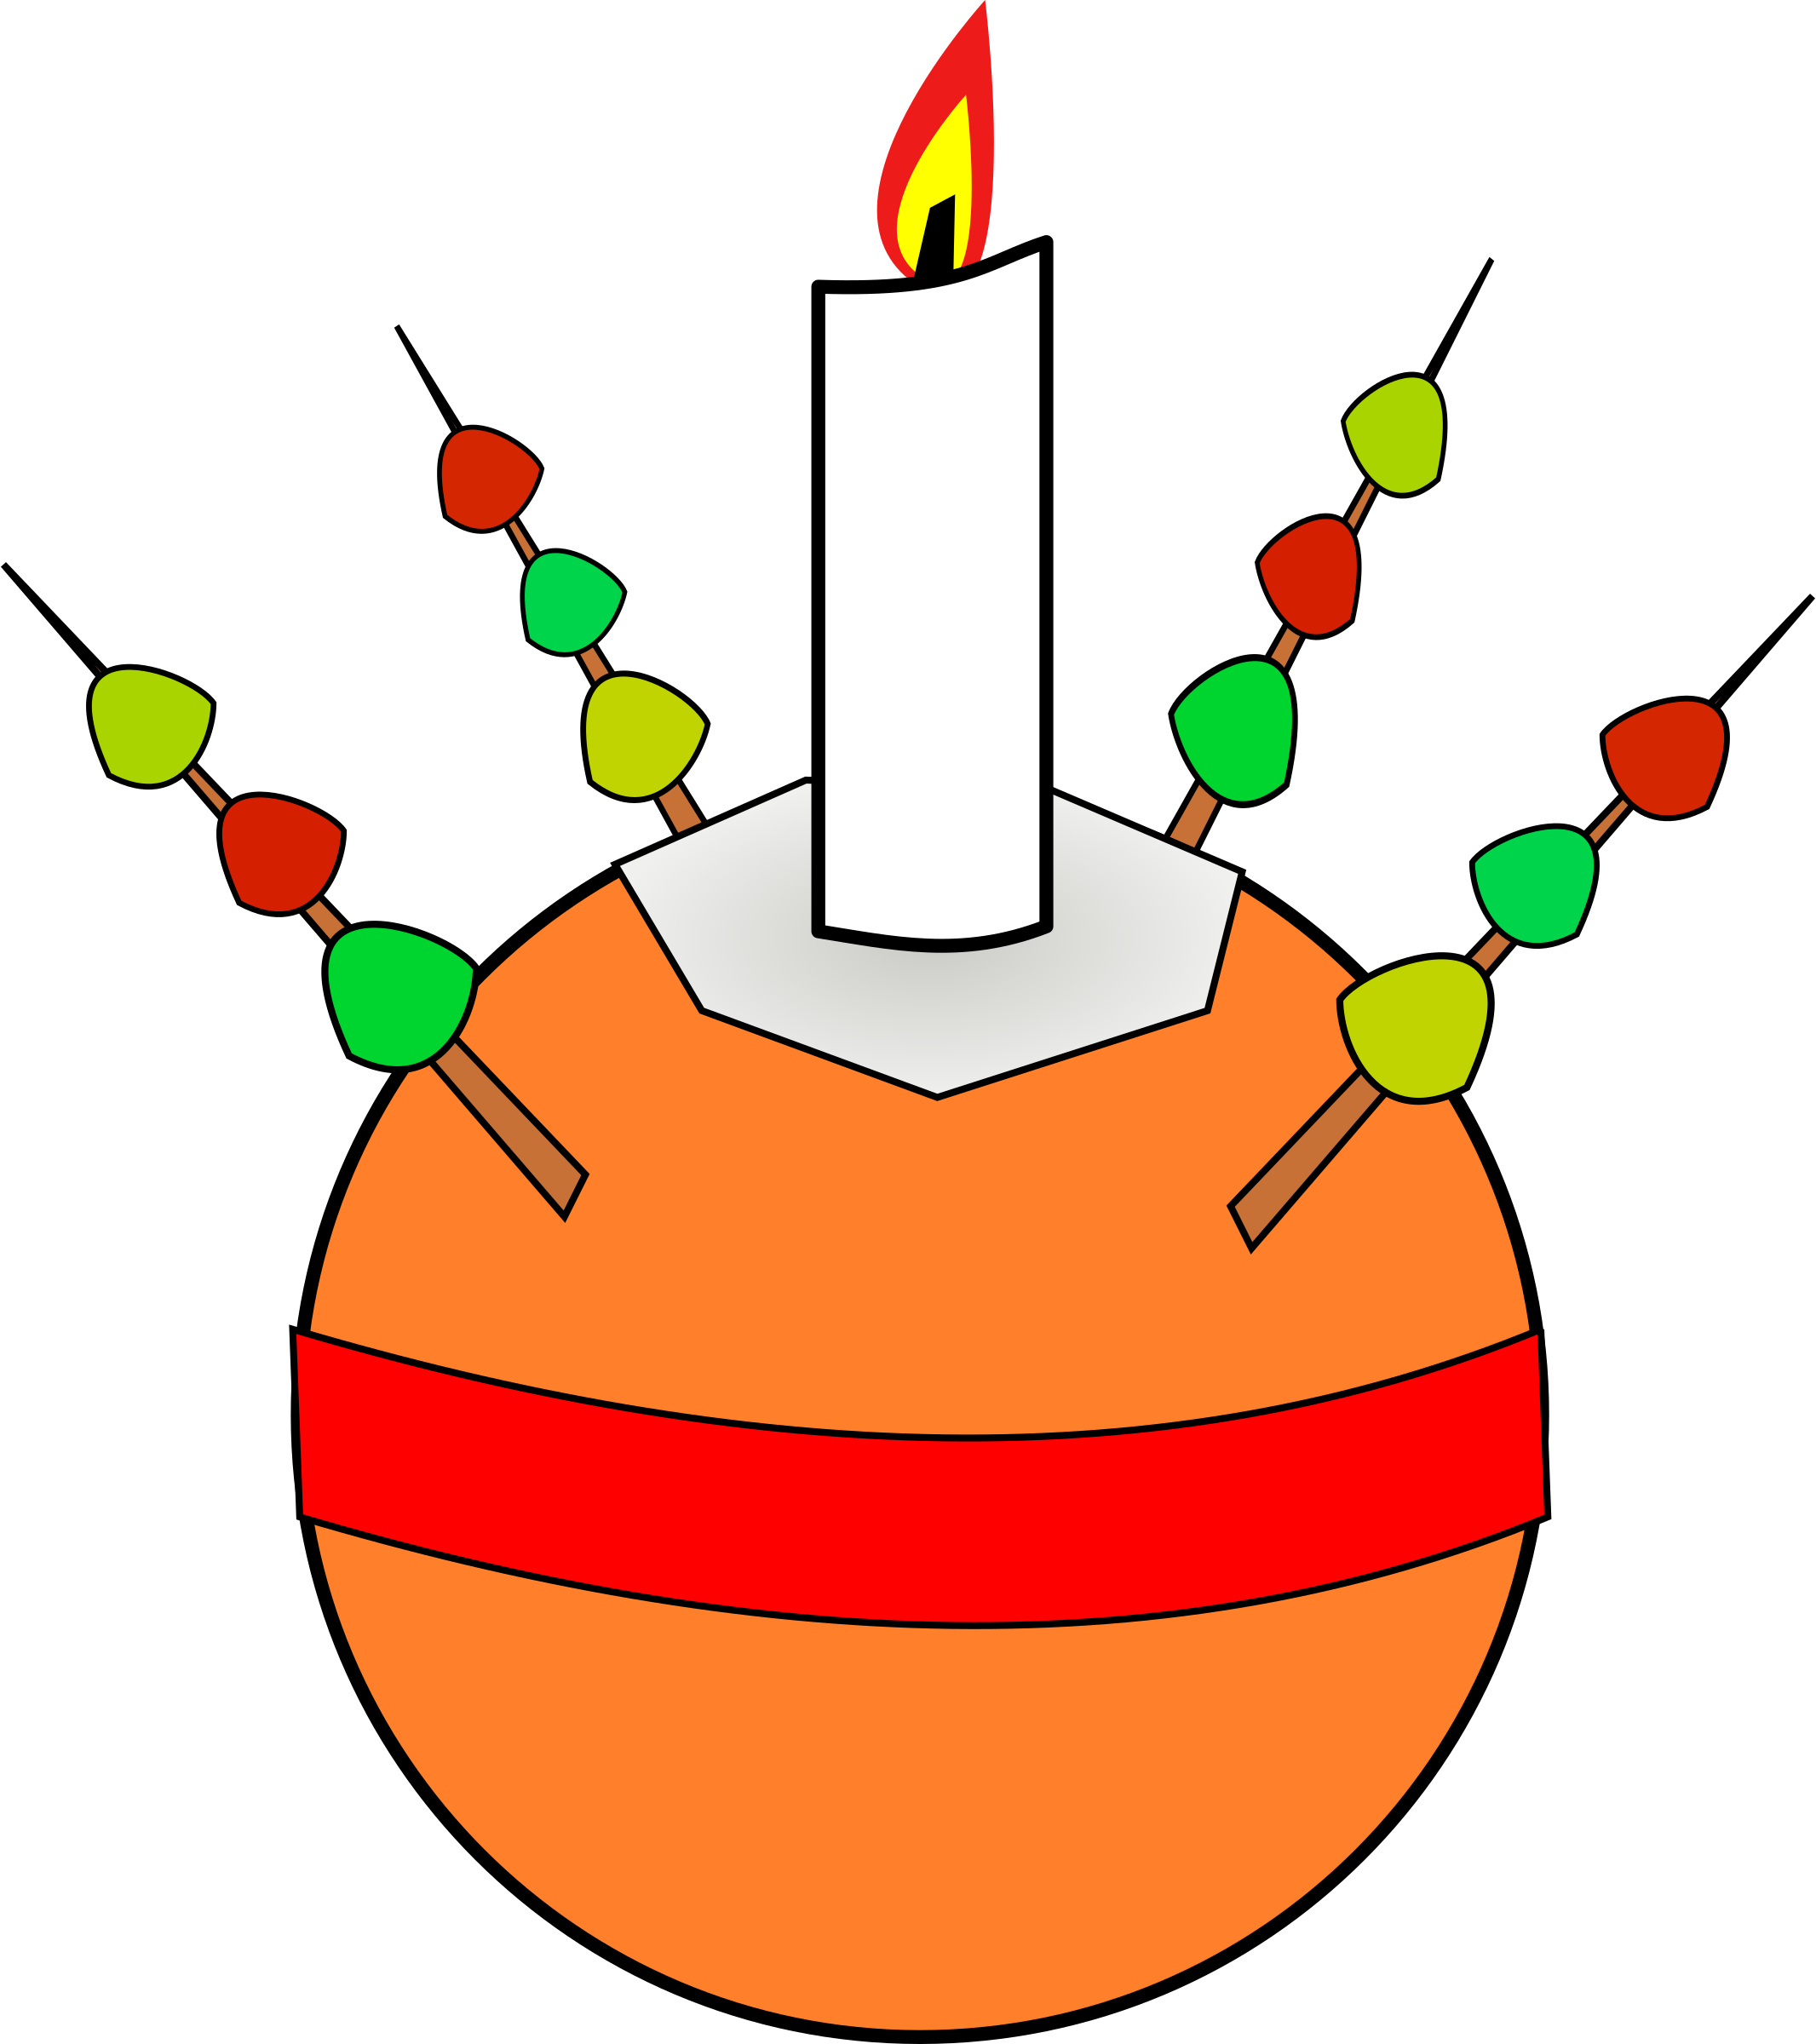 Clipart - Christingle - 195.8KB